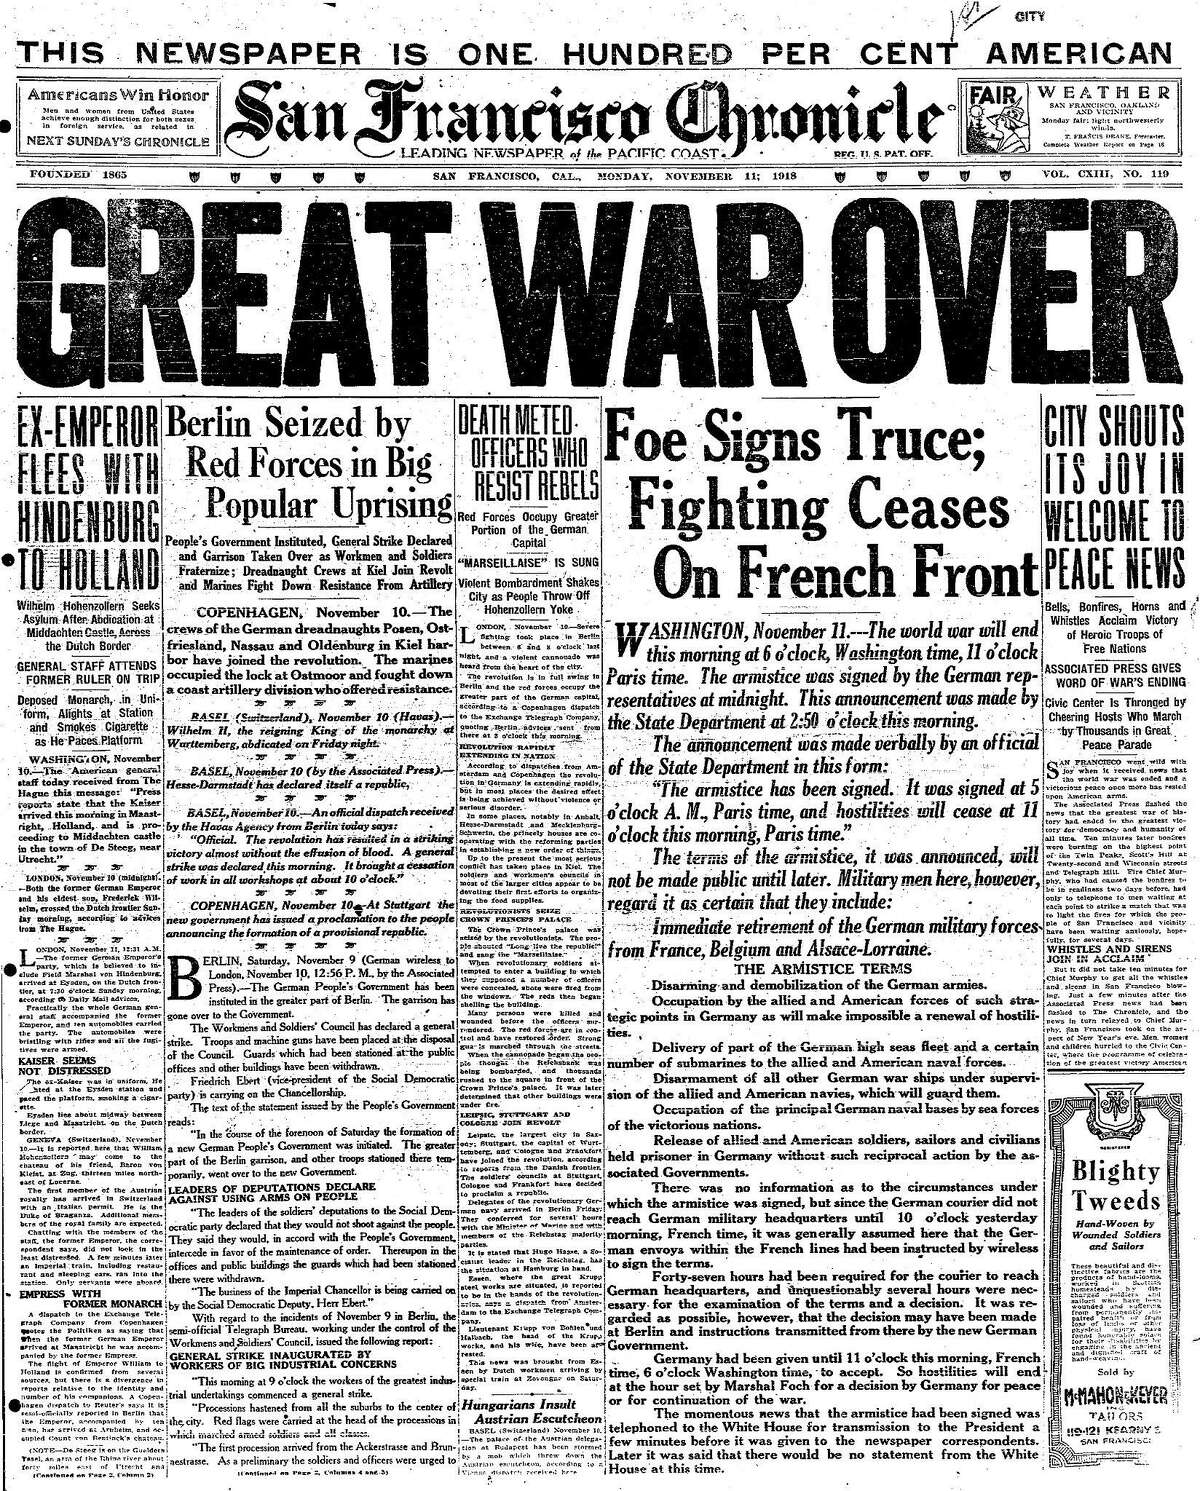 Historic Chronicle Front Page November 11, 1918 Peace, World War I Ends Chron365, Chroncover